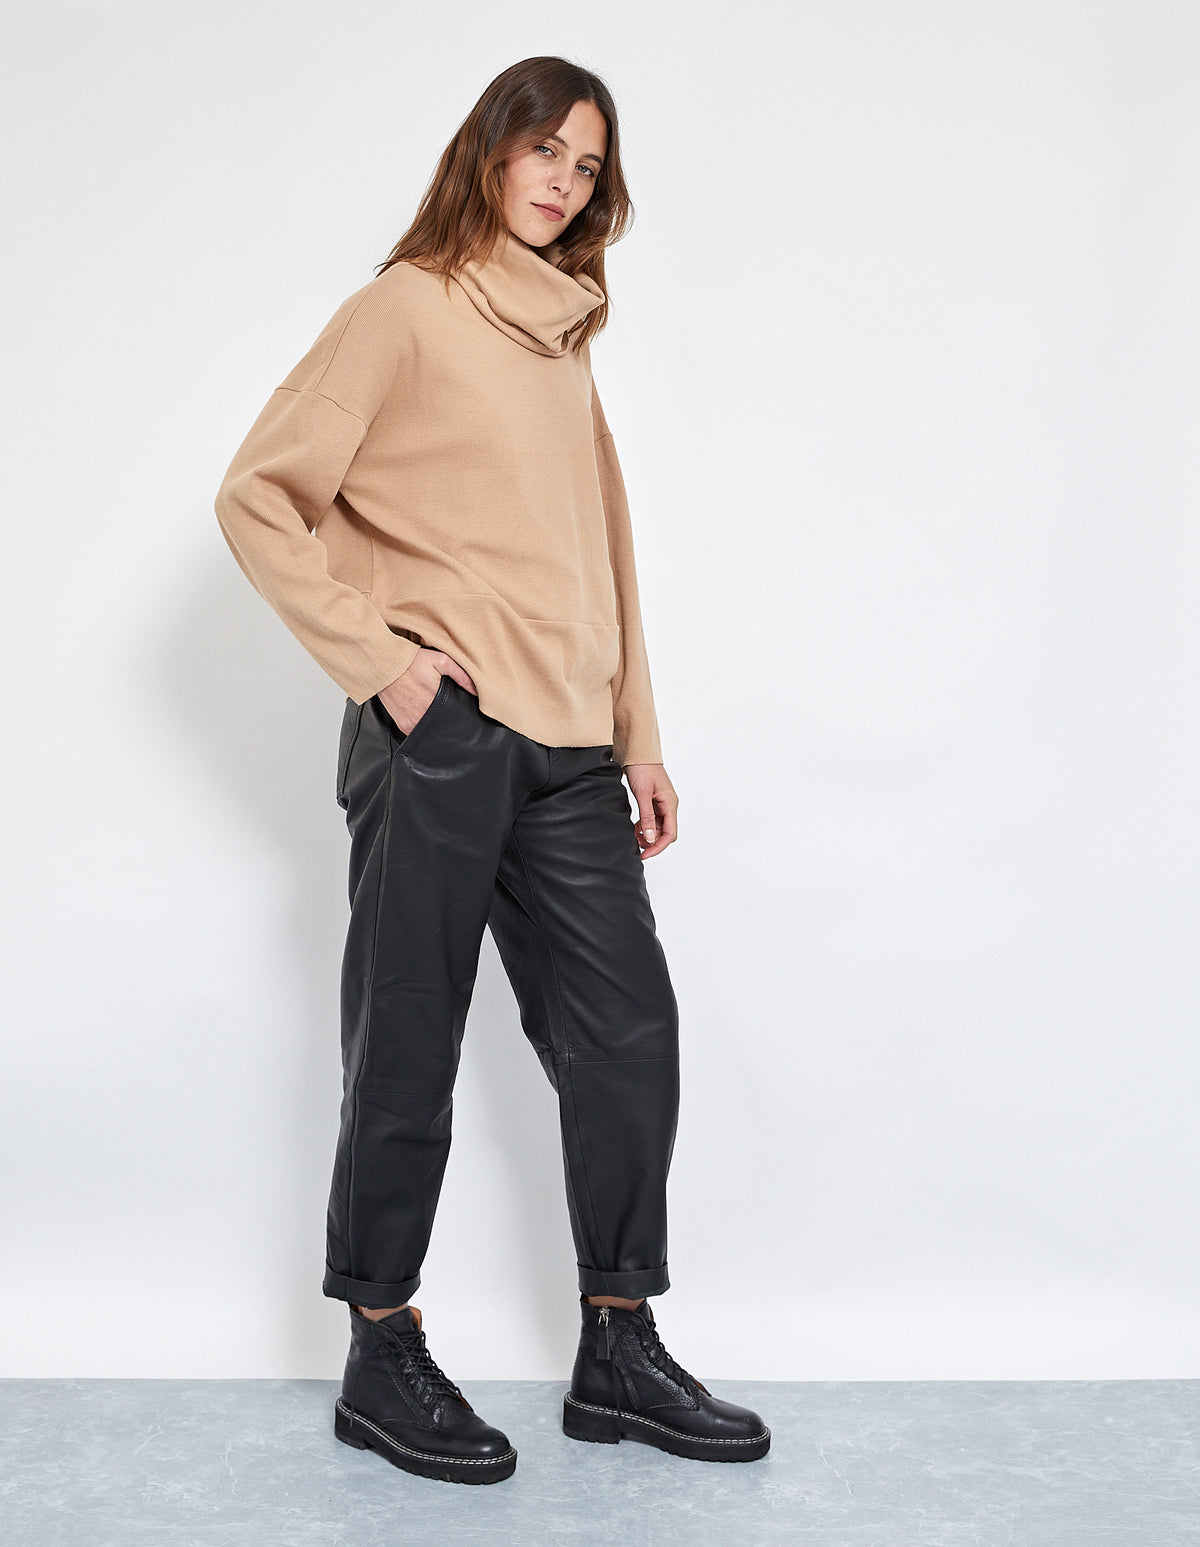 BRUNO RIB OVERSIZED TOP | BEIGE